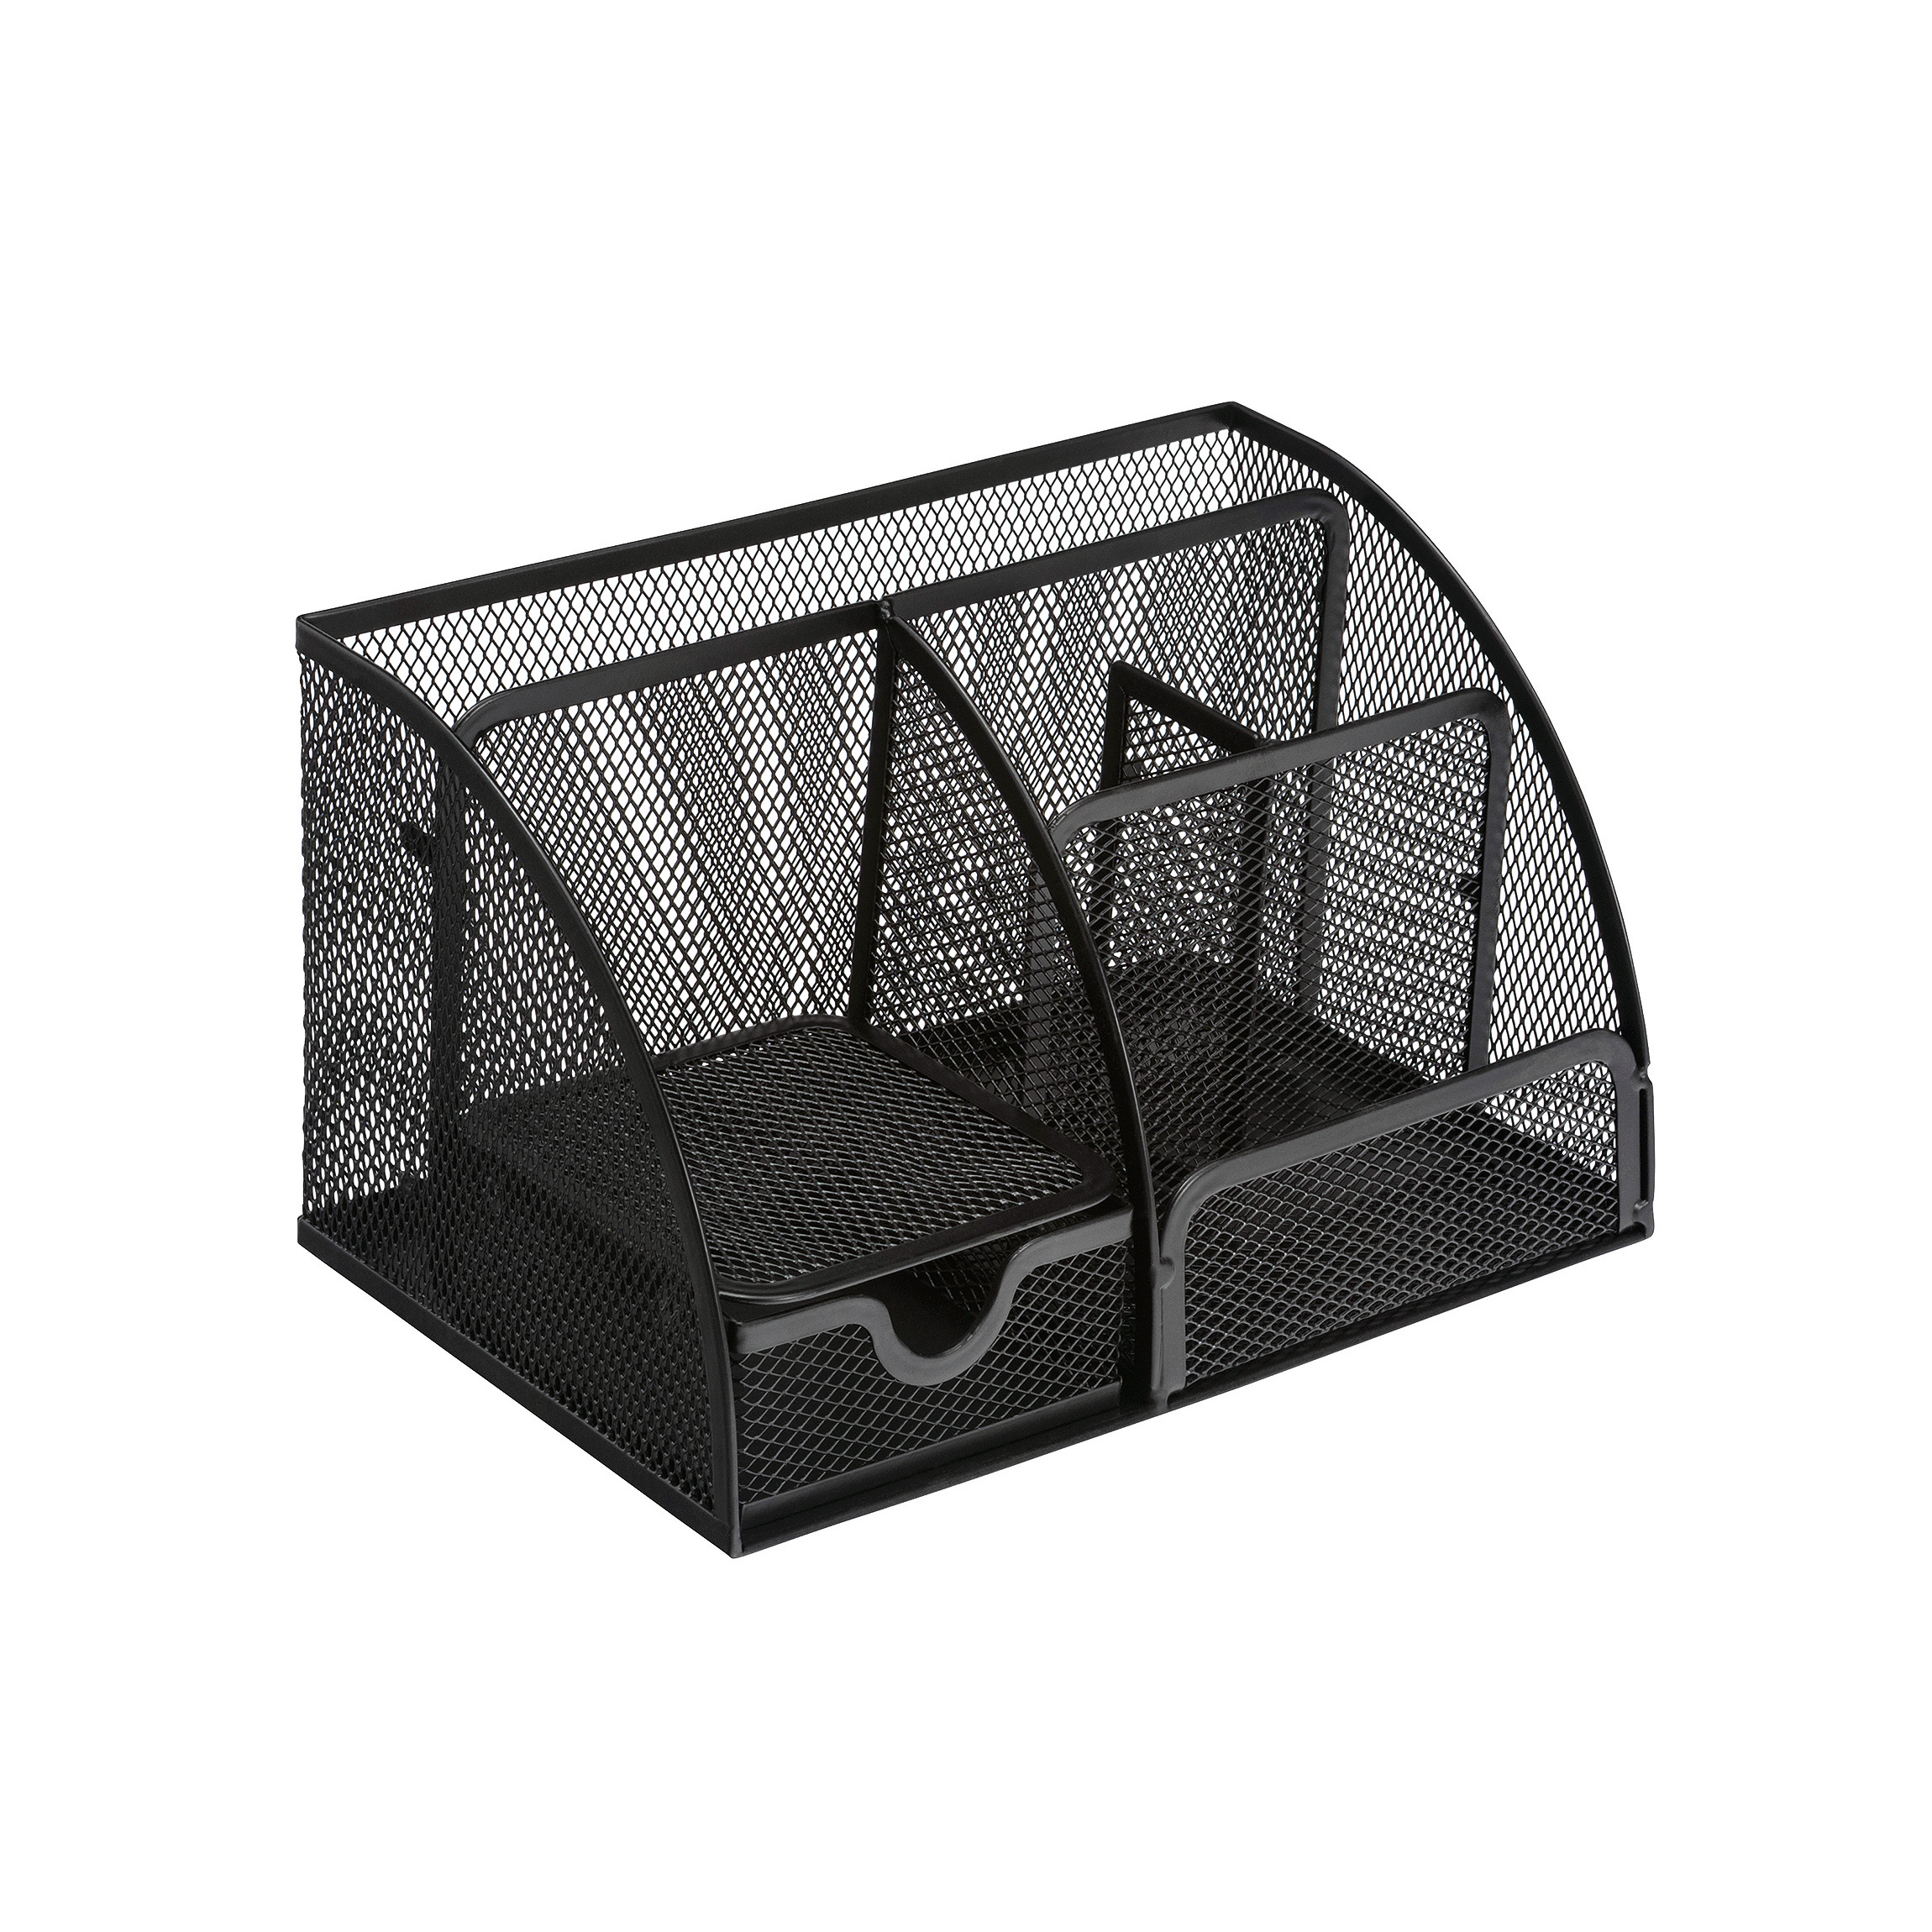 5 Star Office Desk Organiser Mesh Scratch Resistant with Non Marking Rubber Pads Black